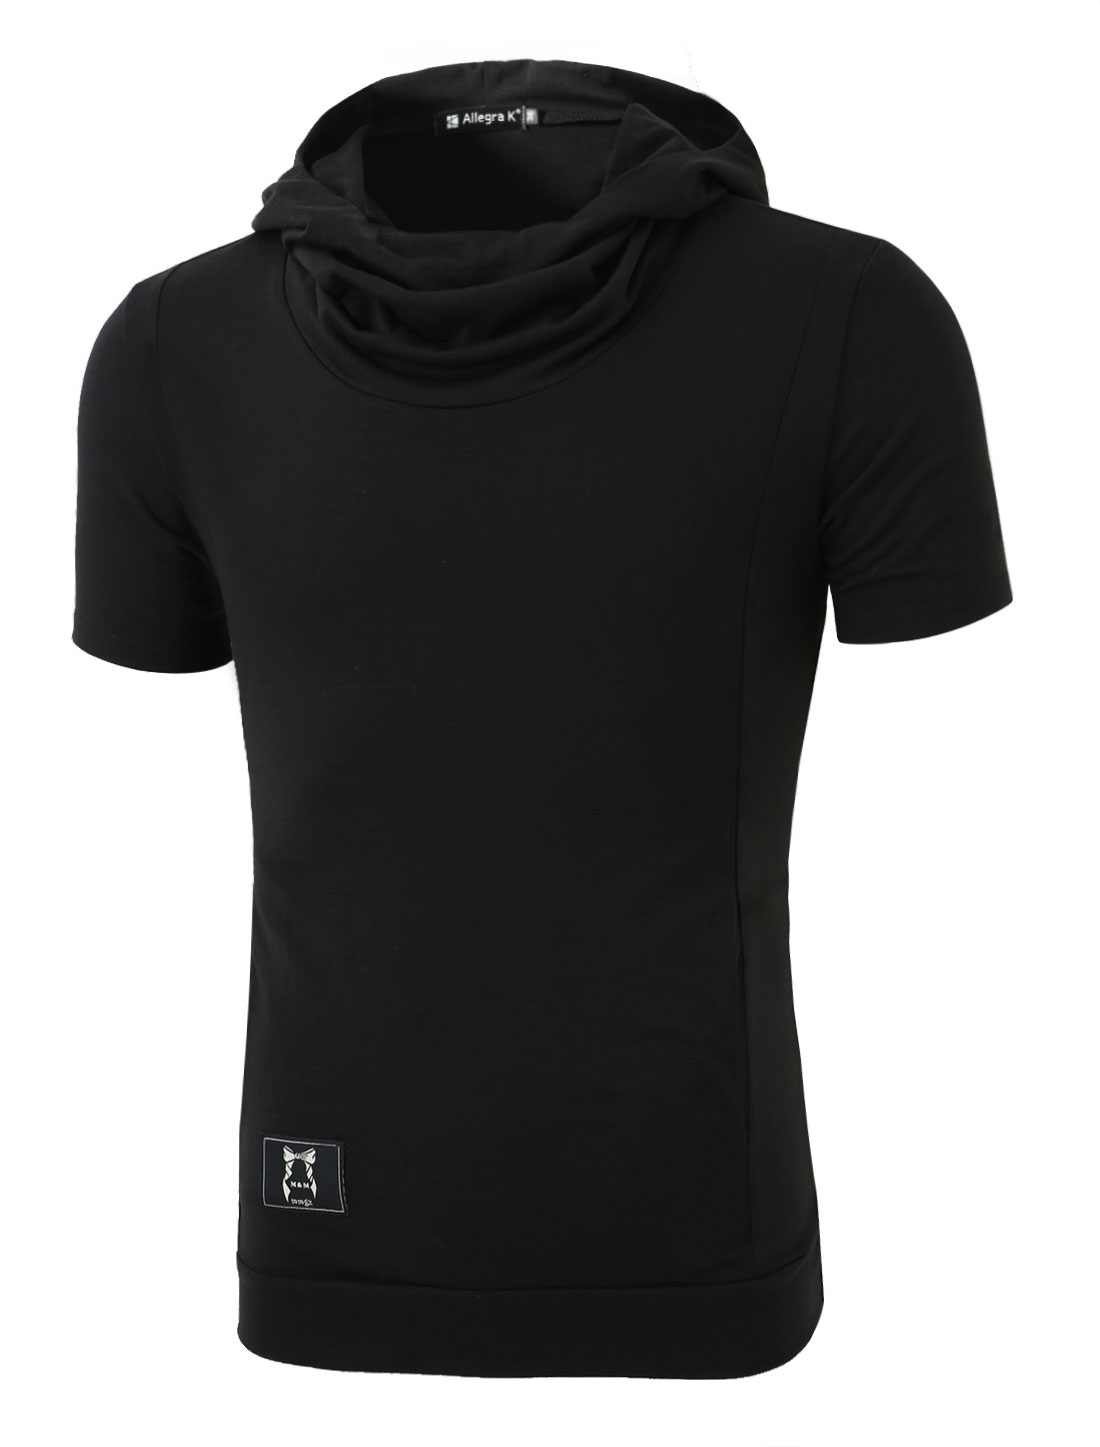 Men Cowl Neck Two Pockets Stylish Hooded T-Shirt Black S